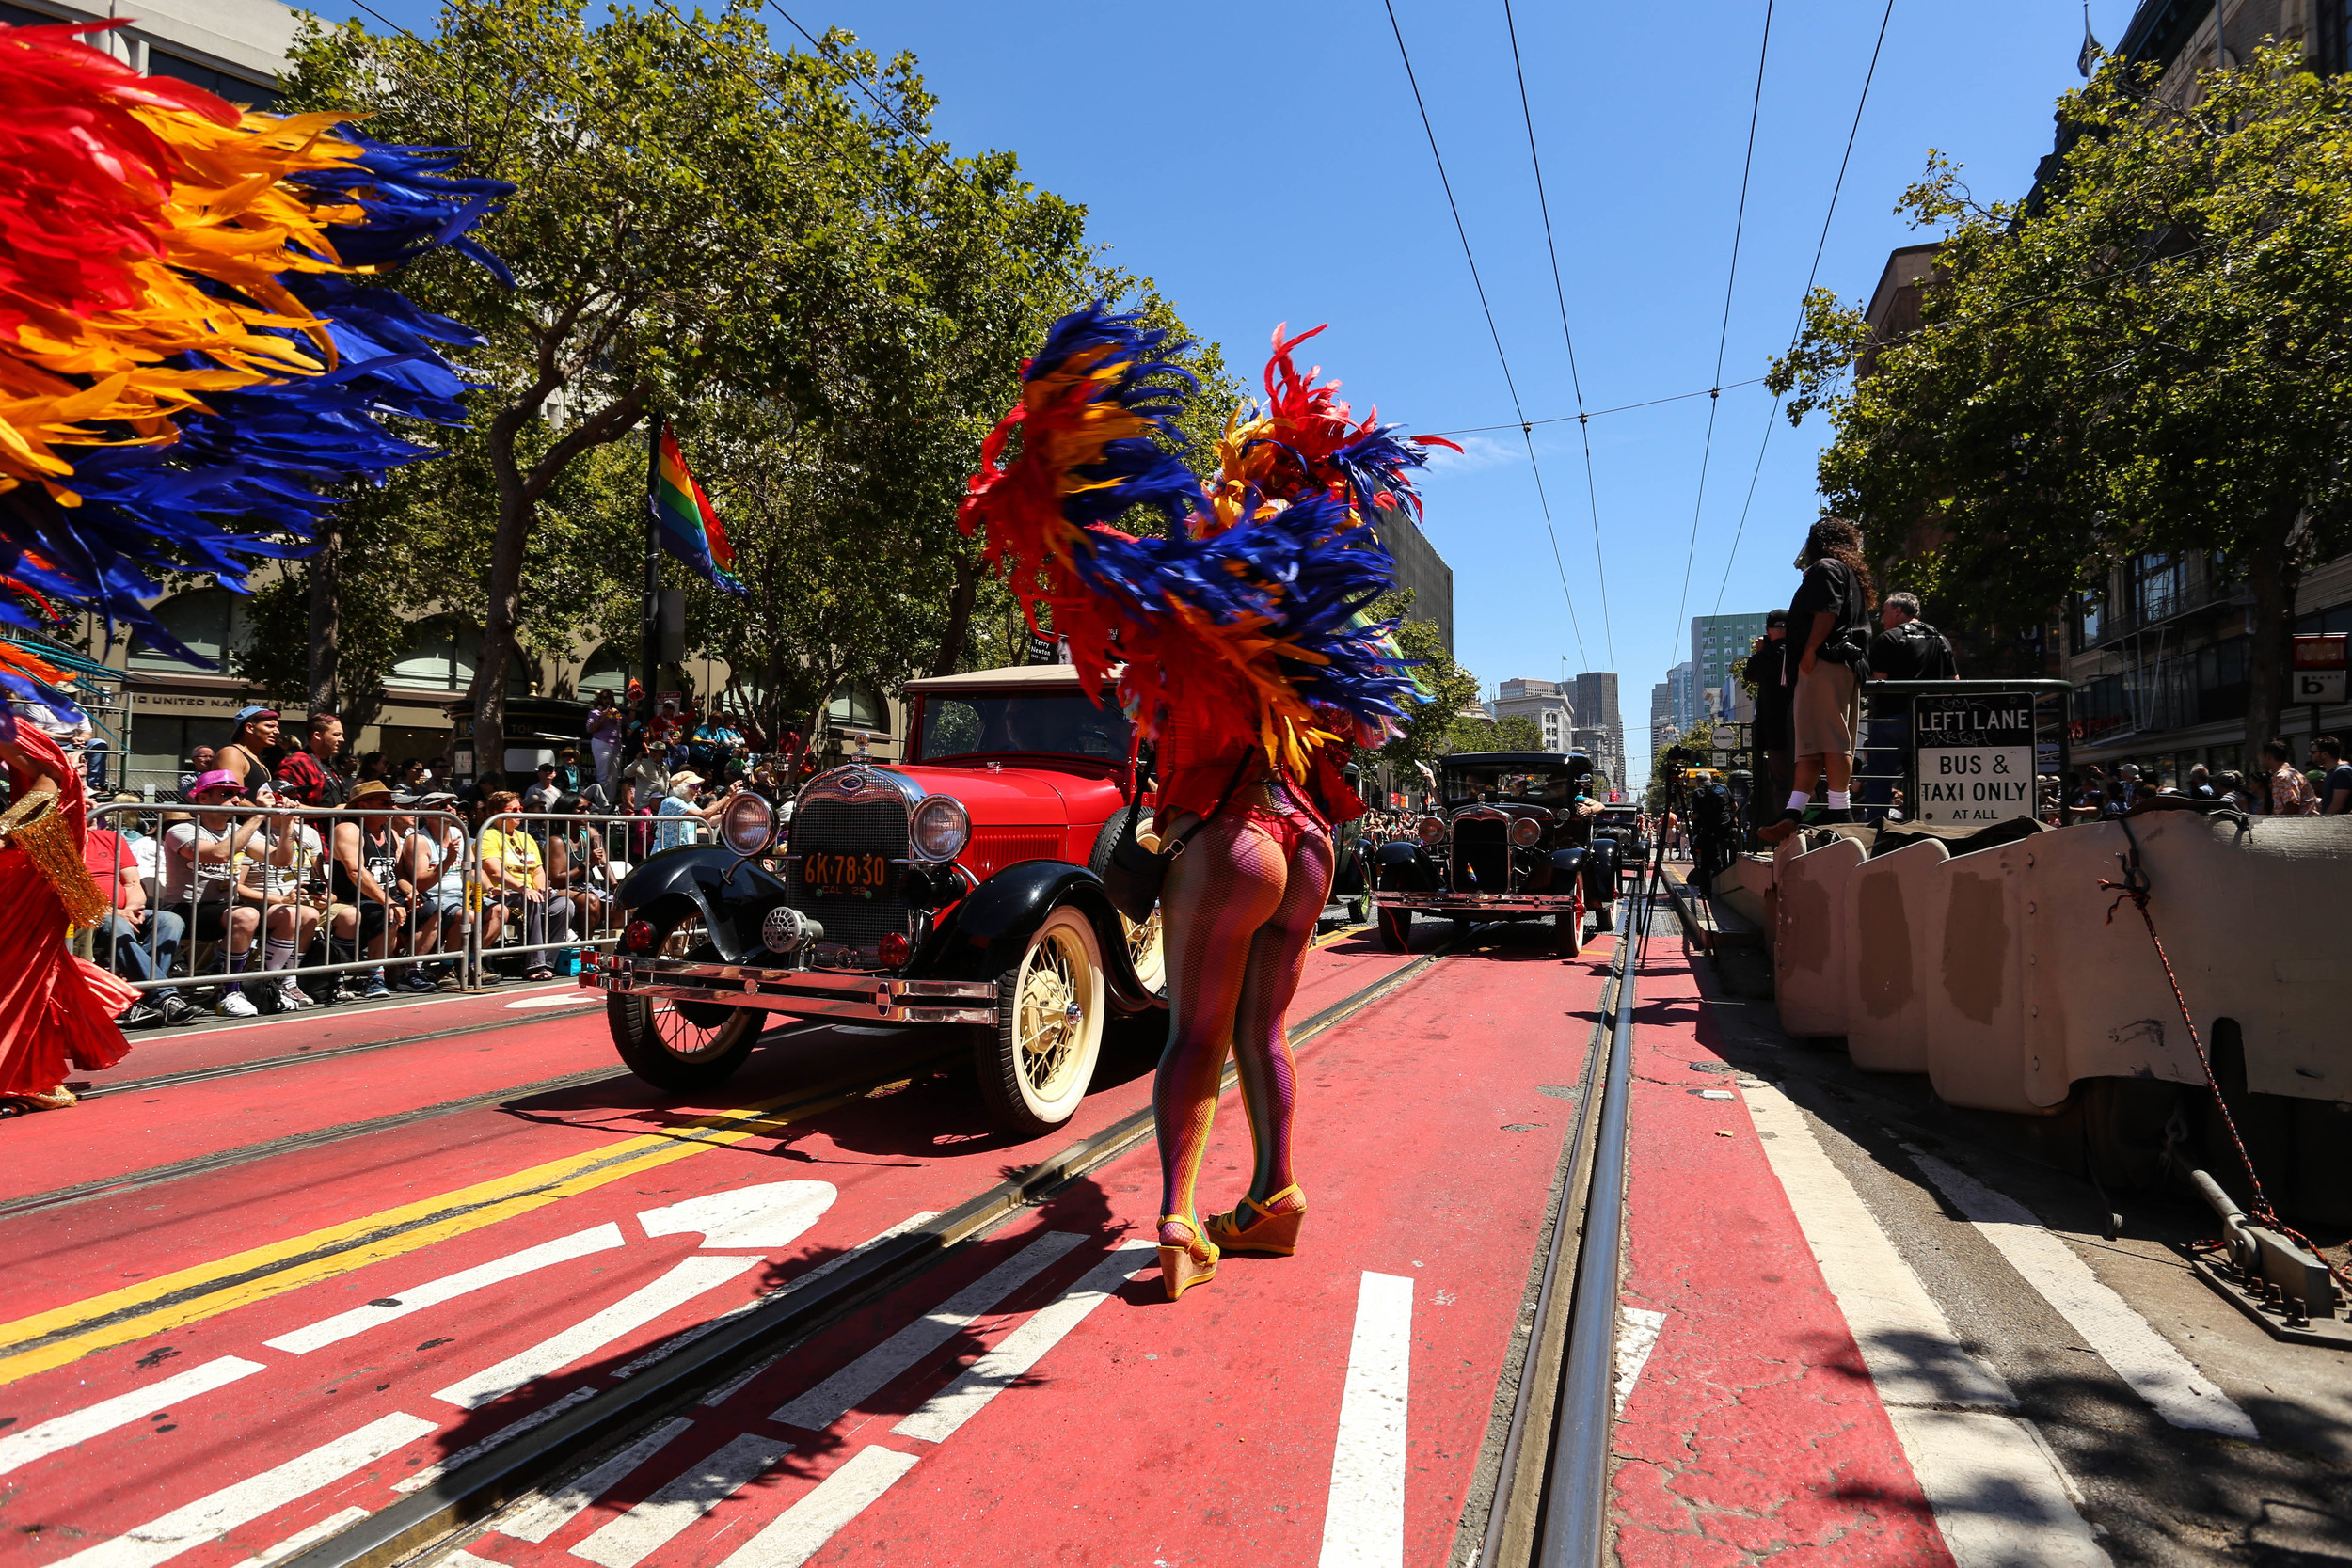 Paraders bare all at the San Francisco Pride on Sunday, June 26, 2016.